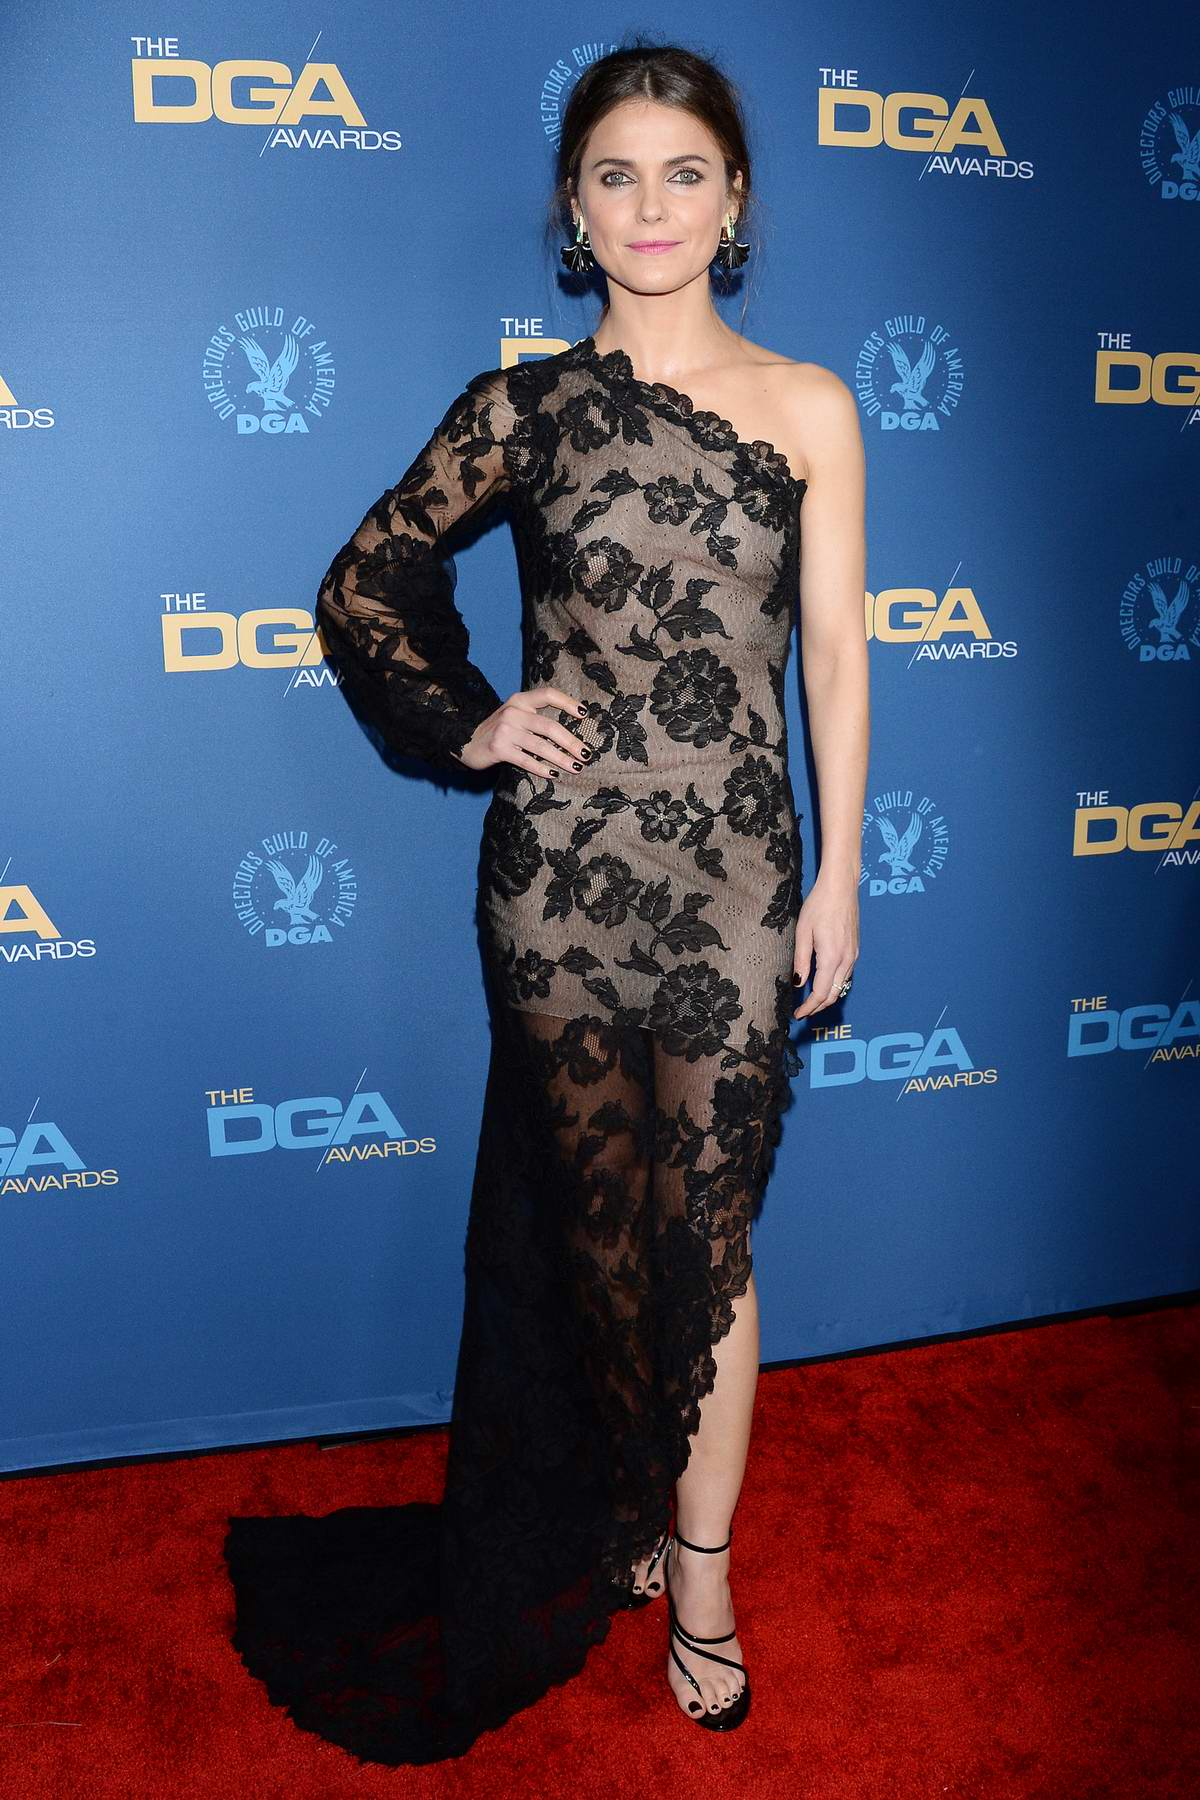 Keri Russell attends the 71st Annual Directors Guild Of America Awards in Hollywood, California